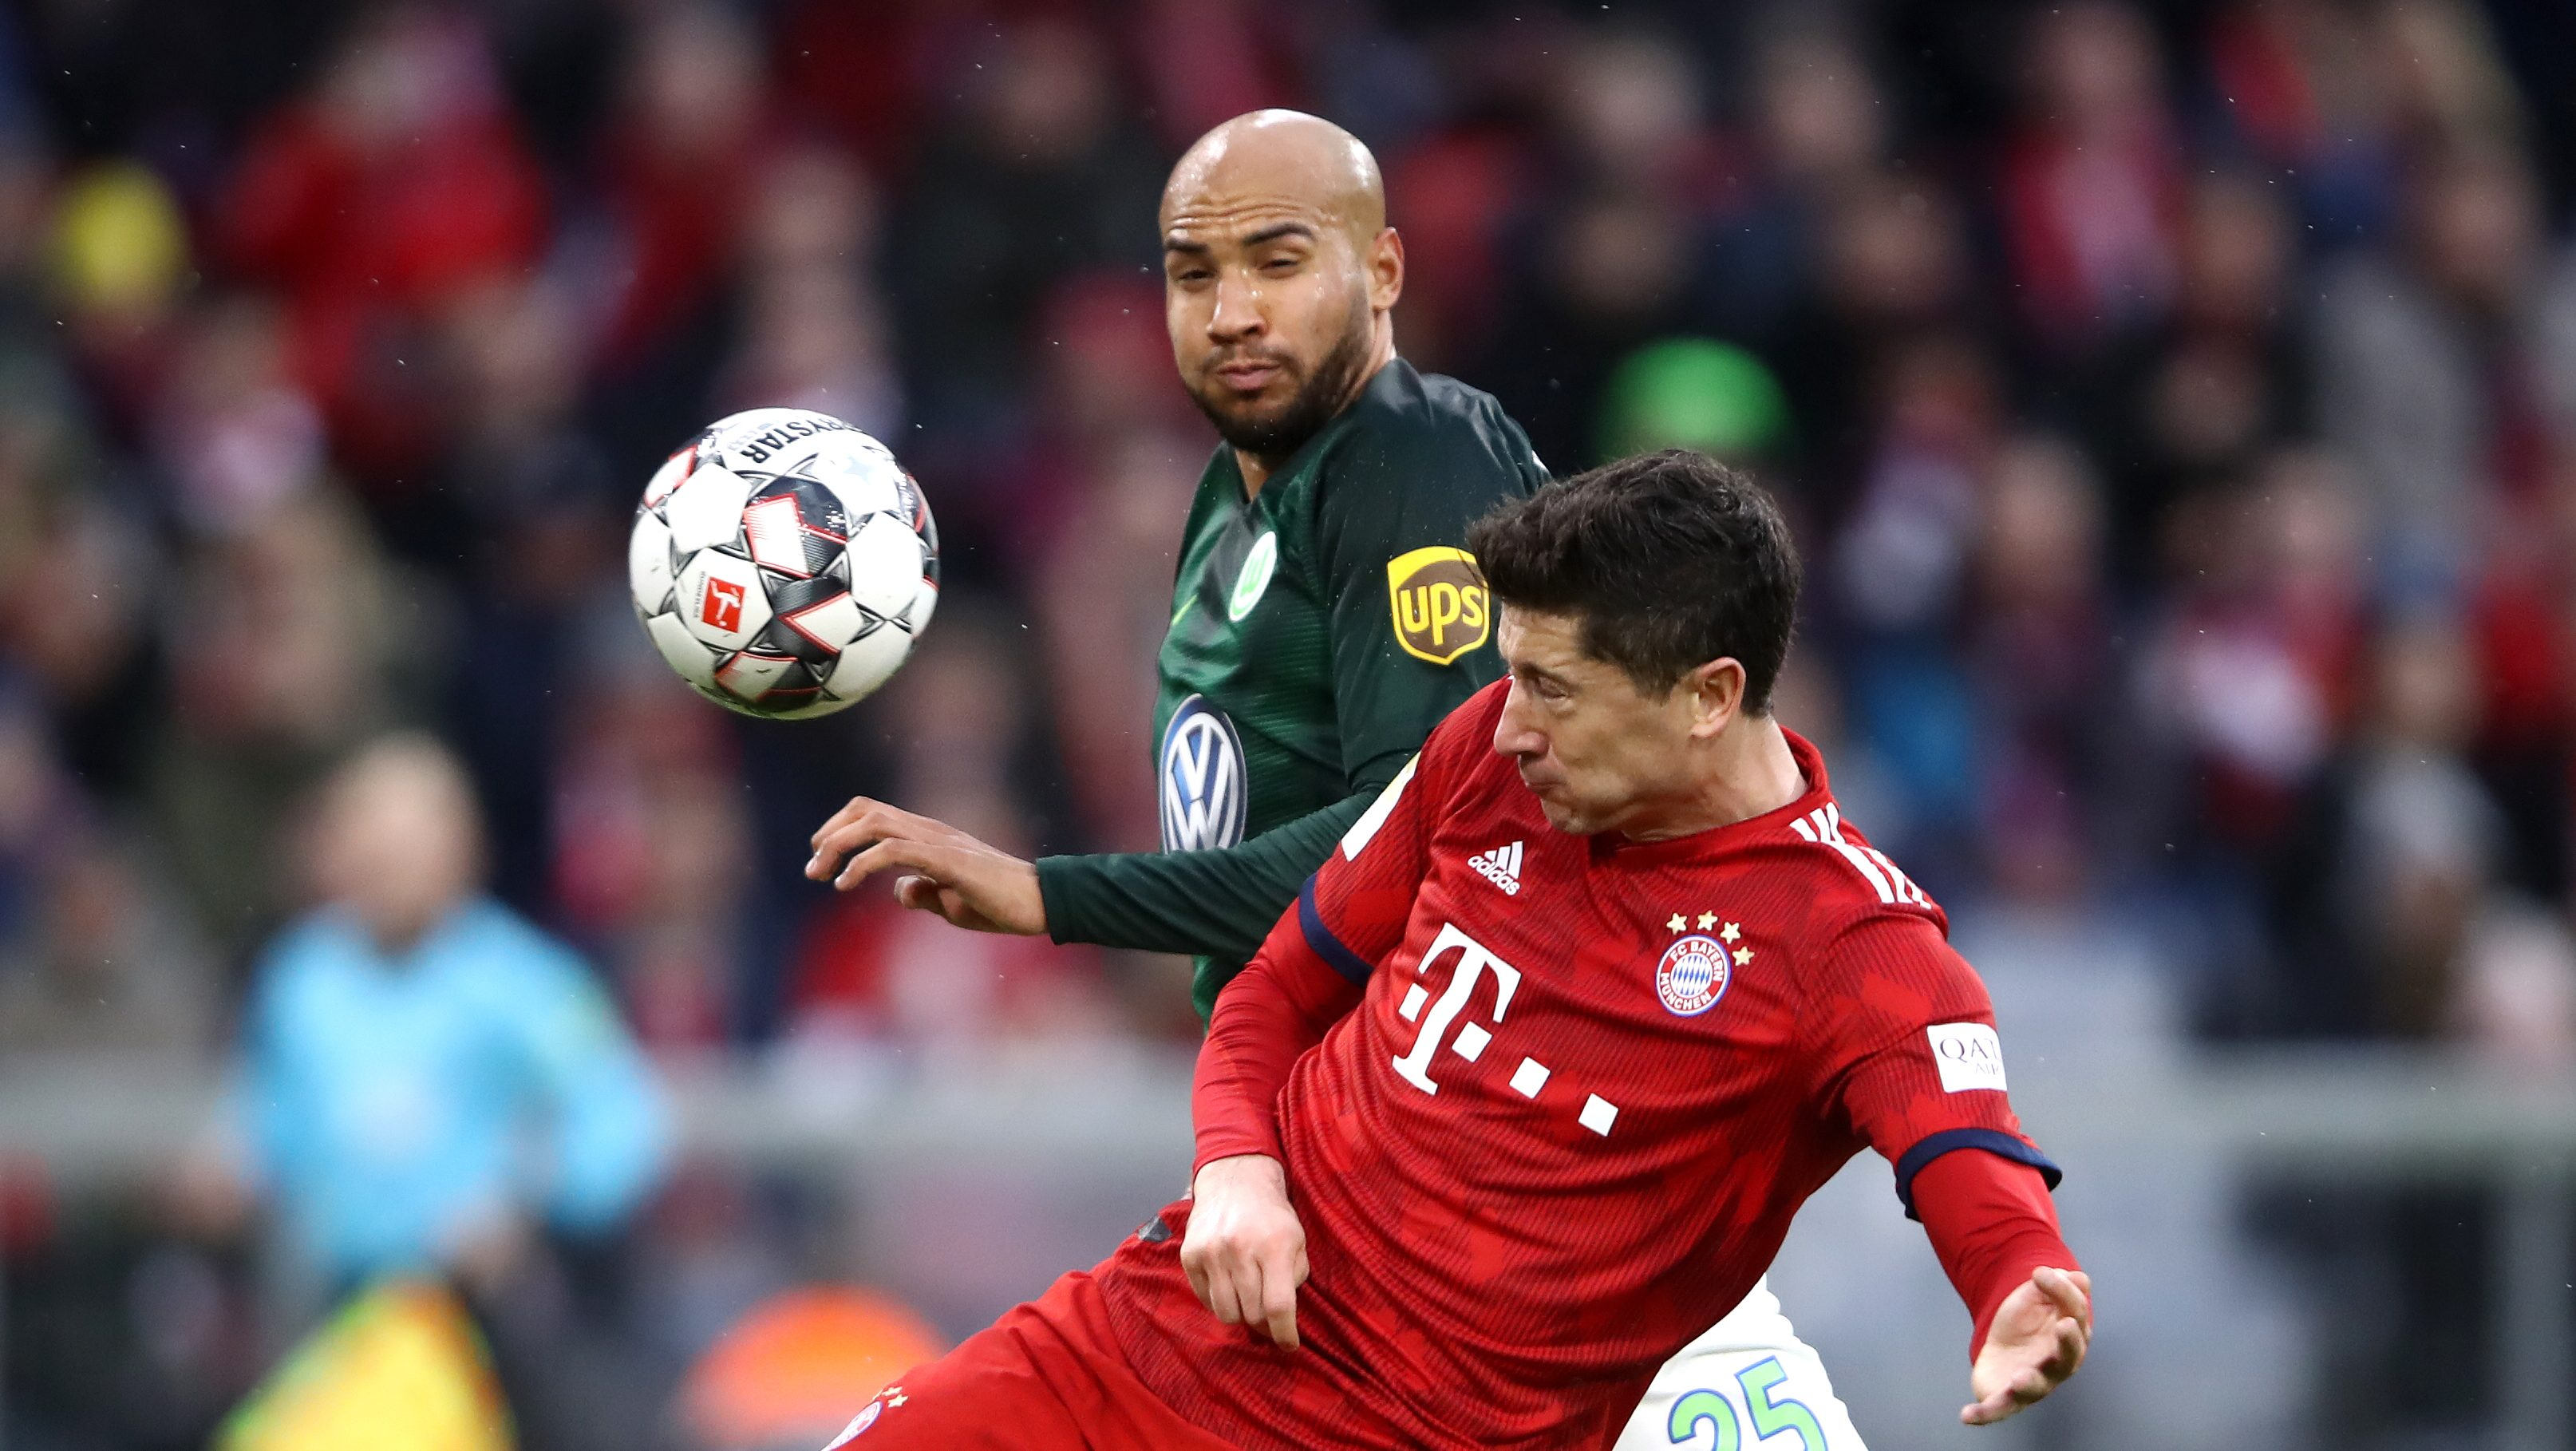 what s at stake on the final day of bundesliga 2019 20 final day of bundesliga 2019